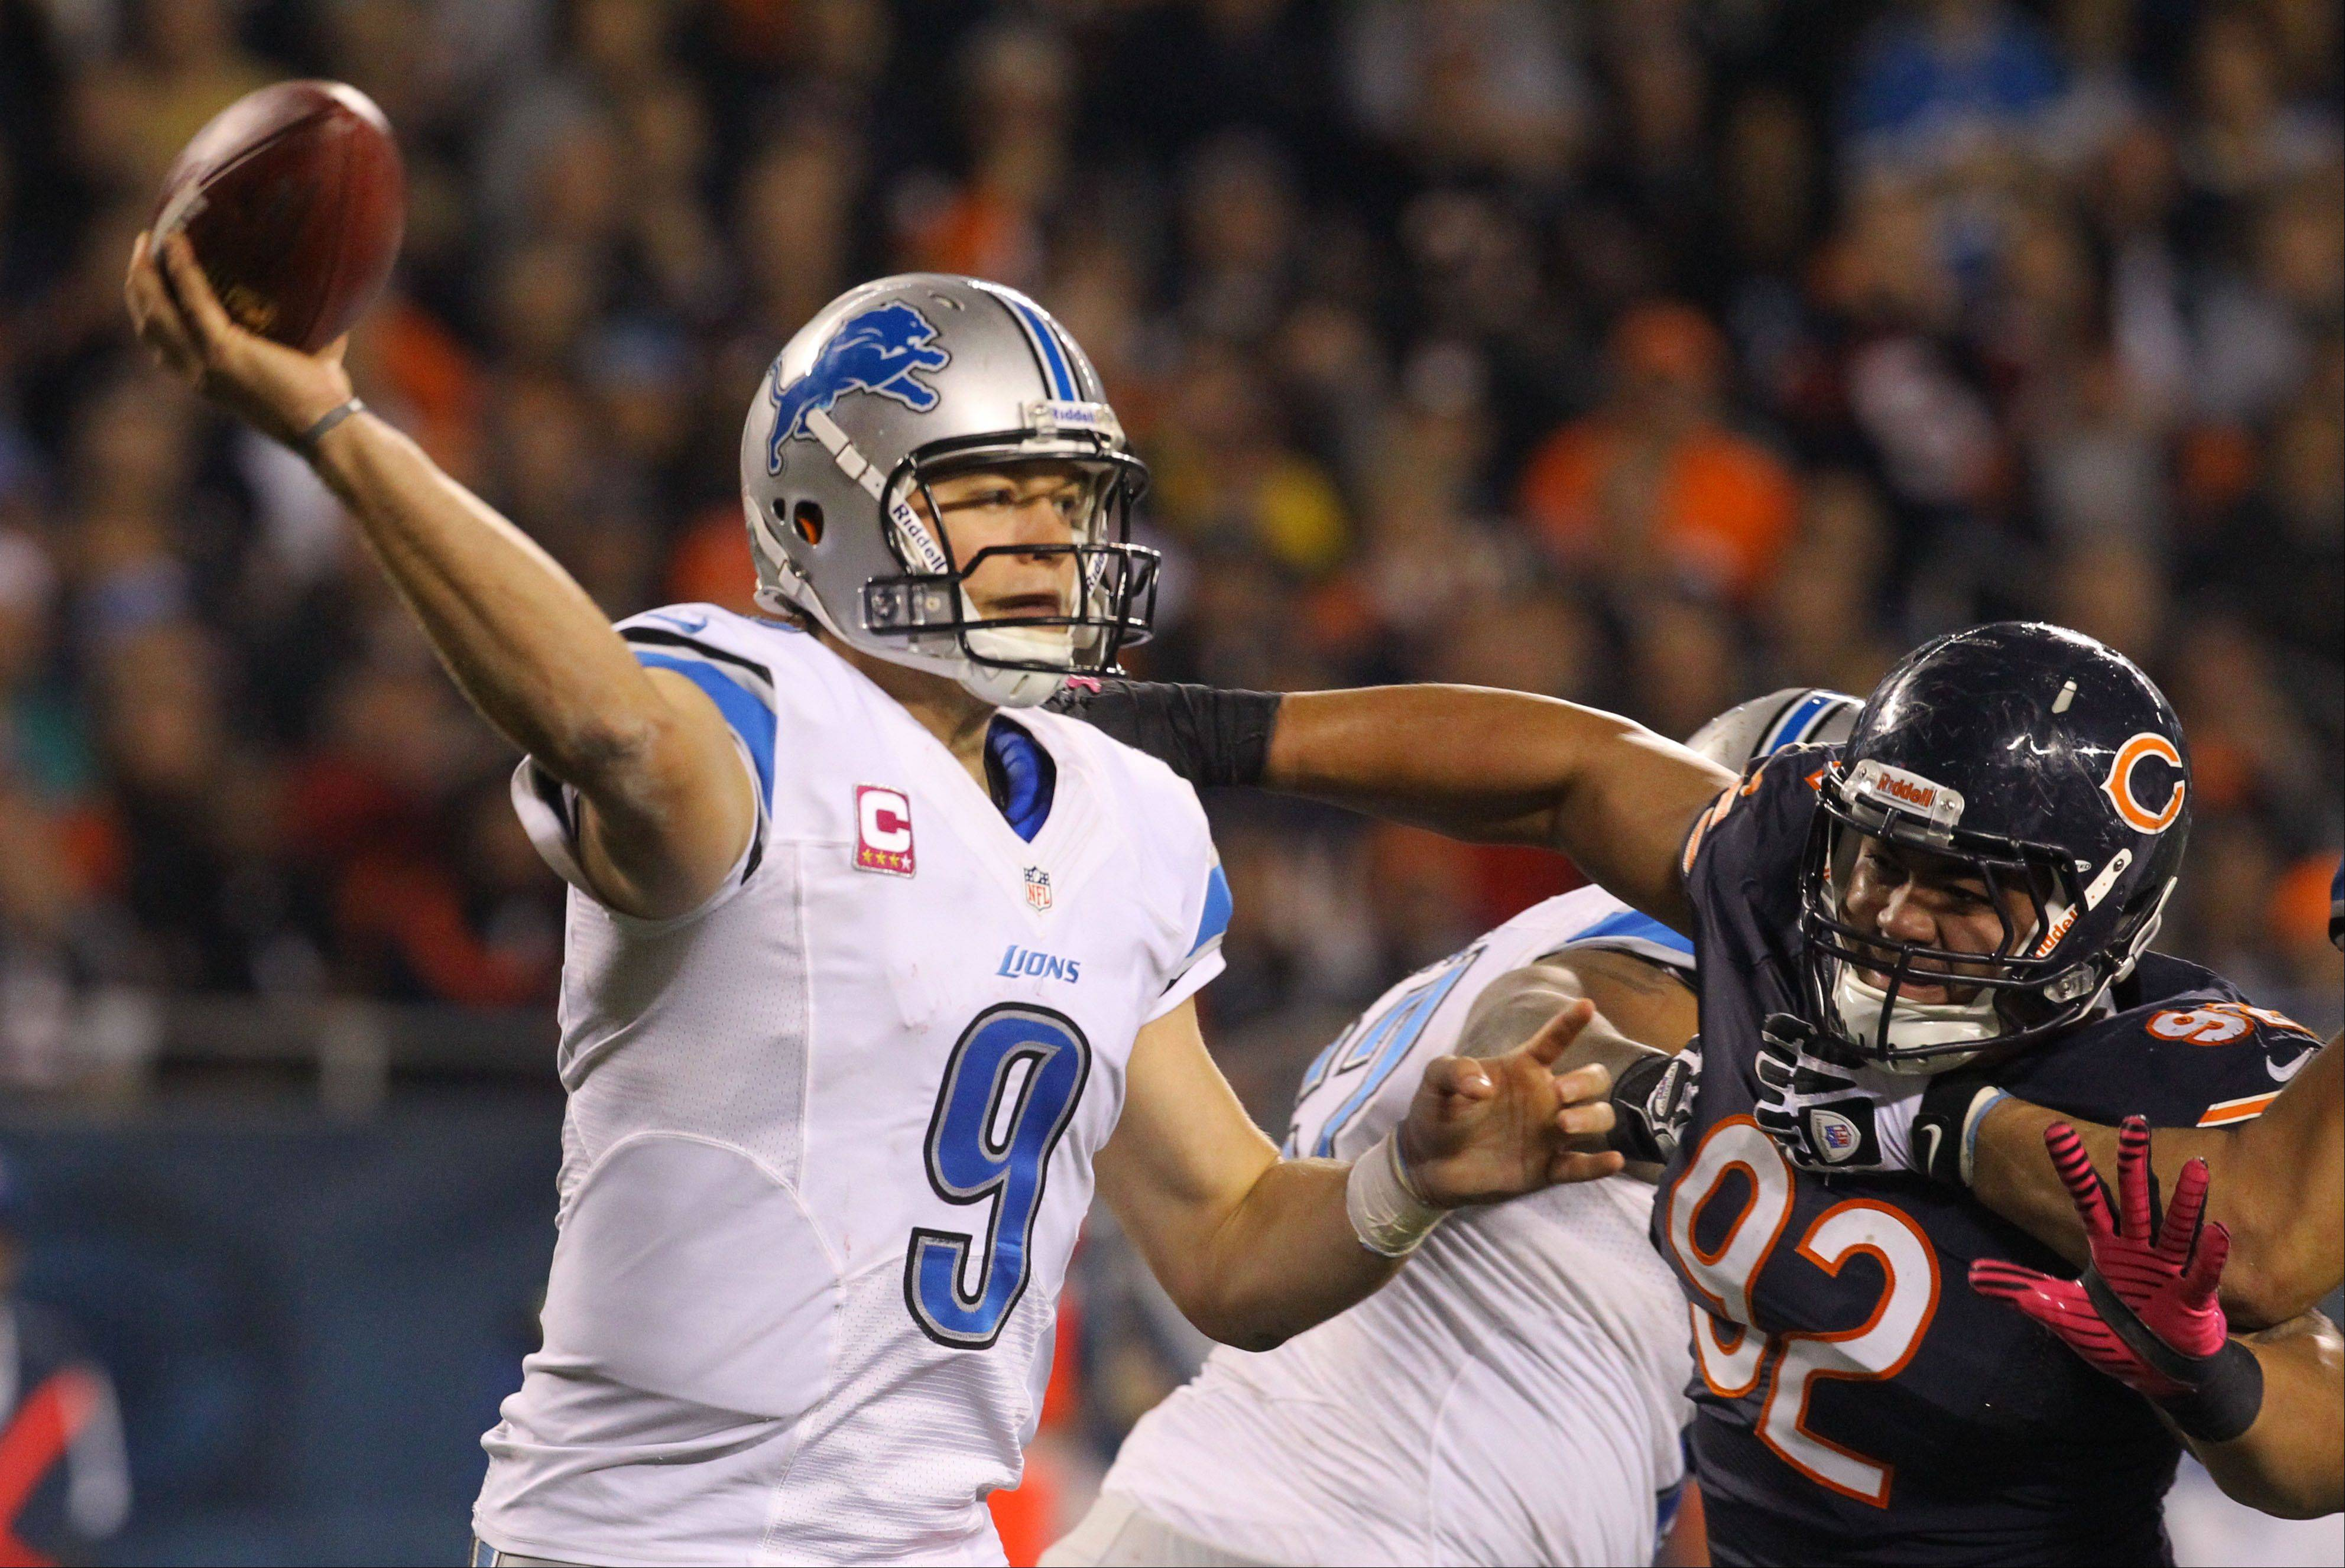 Detroit Lions quarterback Matthew Stafford throws as Chicago Bears defensive tackle Stephen Paea applies pressure.